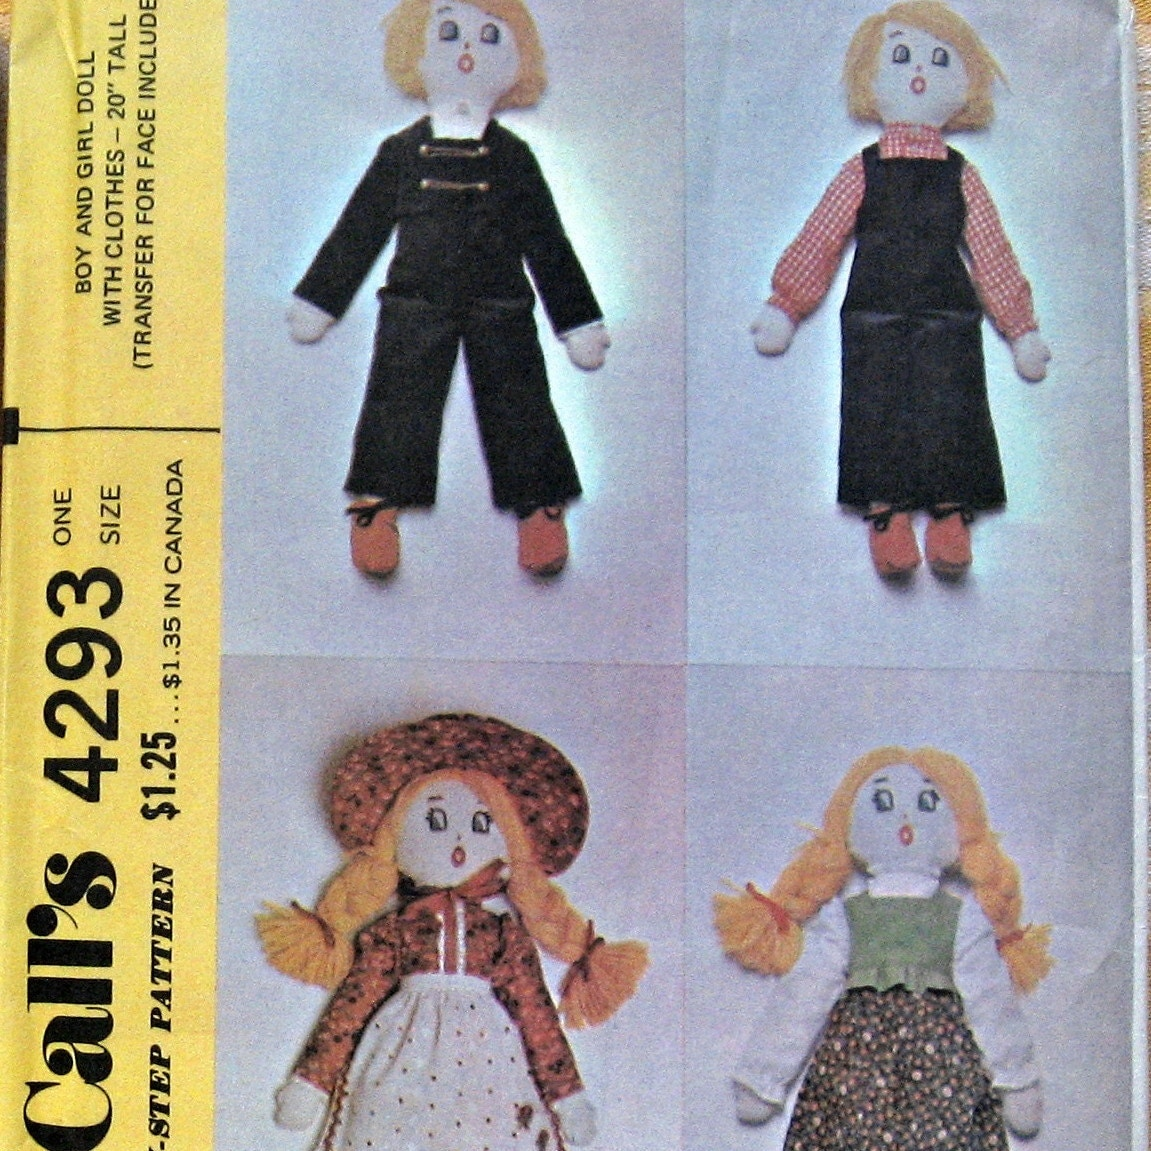 vintage rag doll pattern with clothing and embroidery